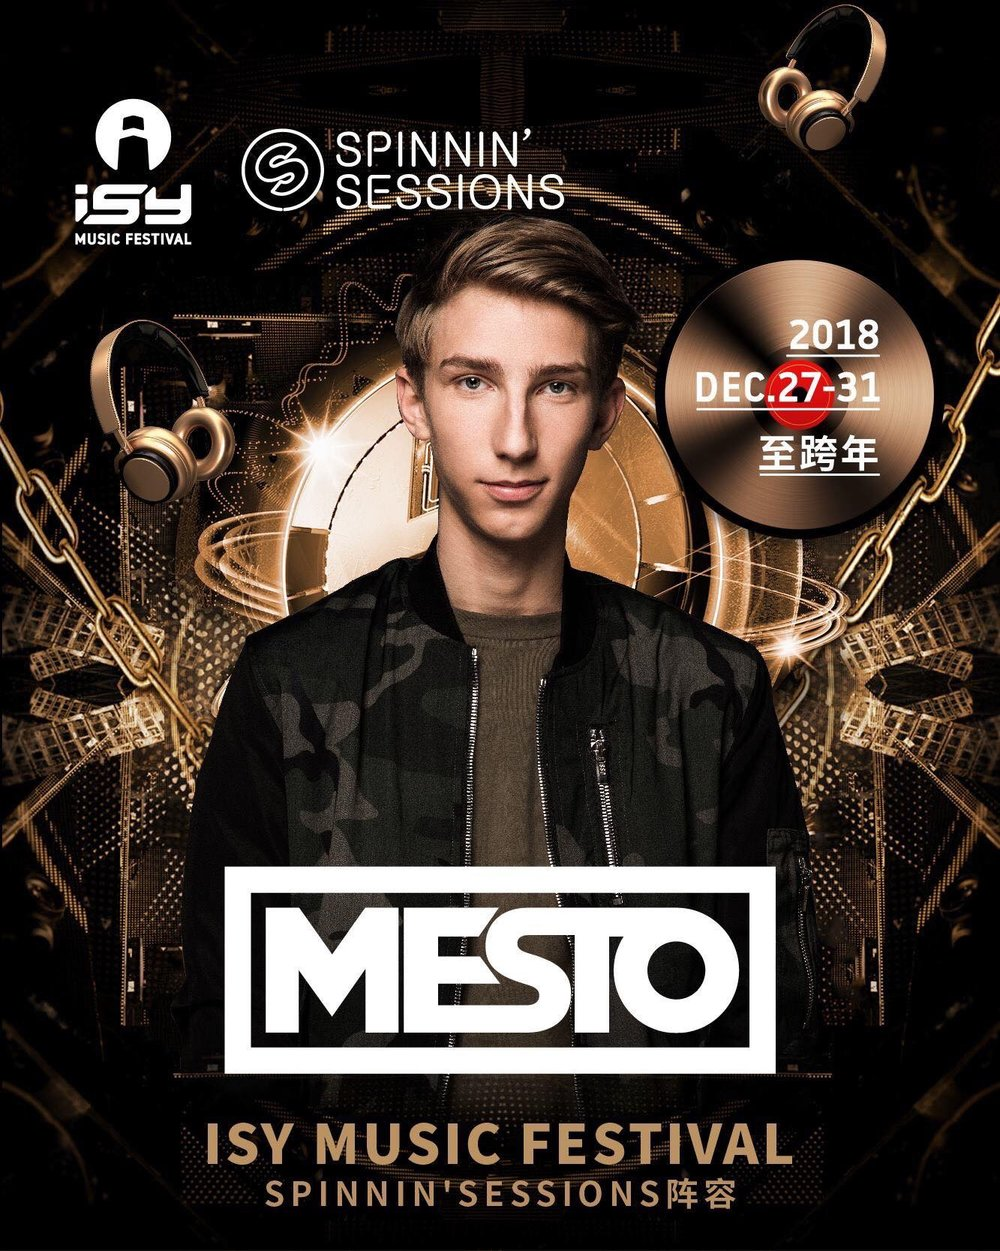 Mesto - is a Dutch electronic musician, record producer, remixer and DJ. He gained recognition after collaborating with Martin Garrix on their single